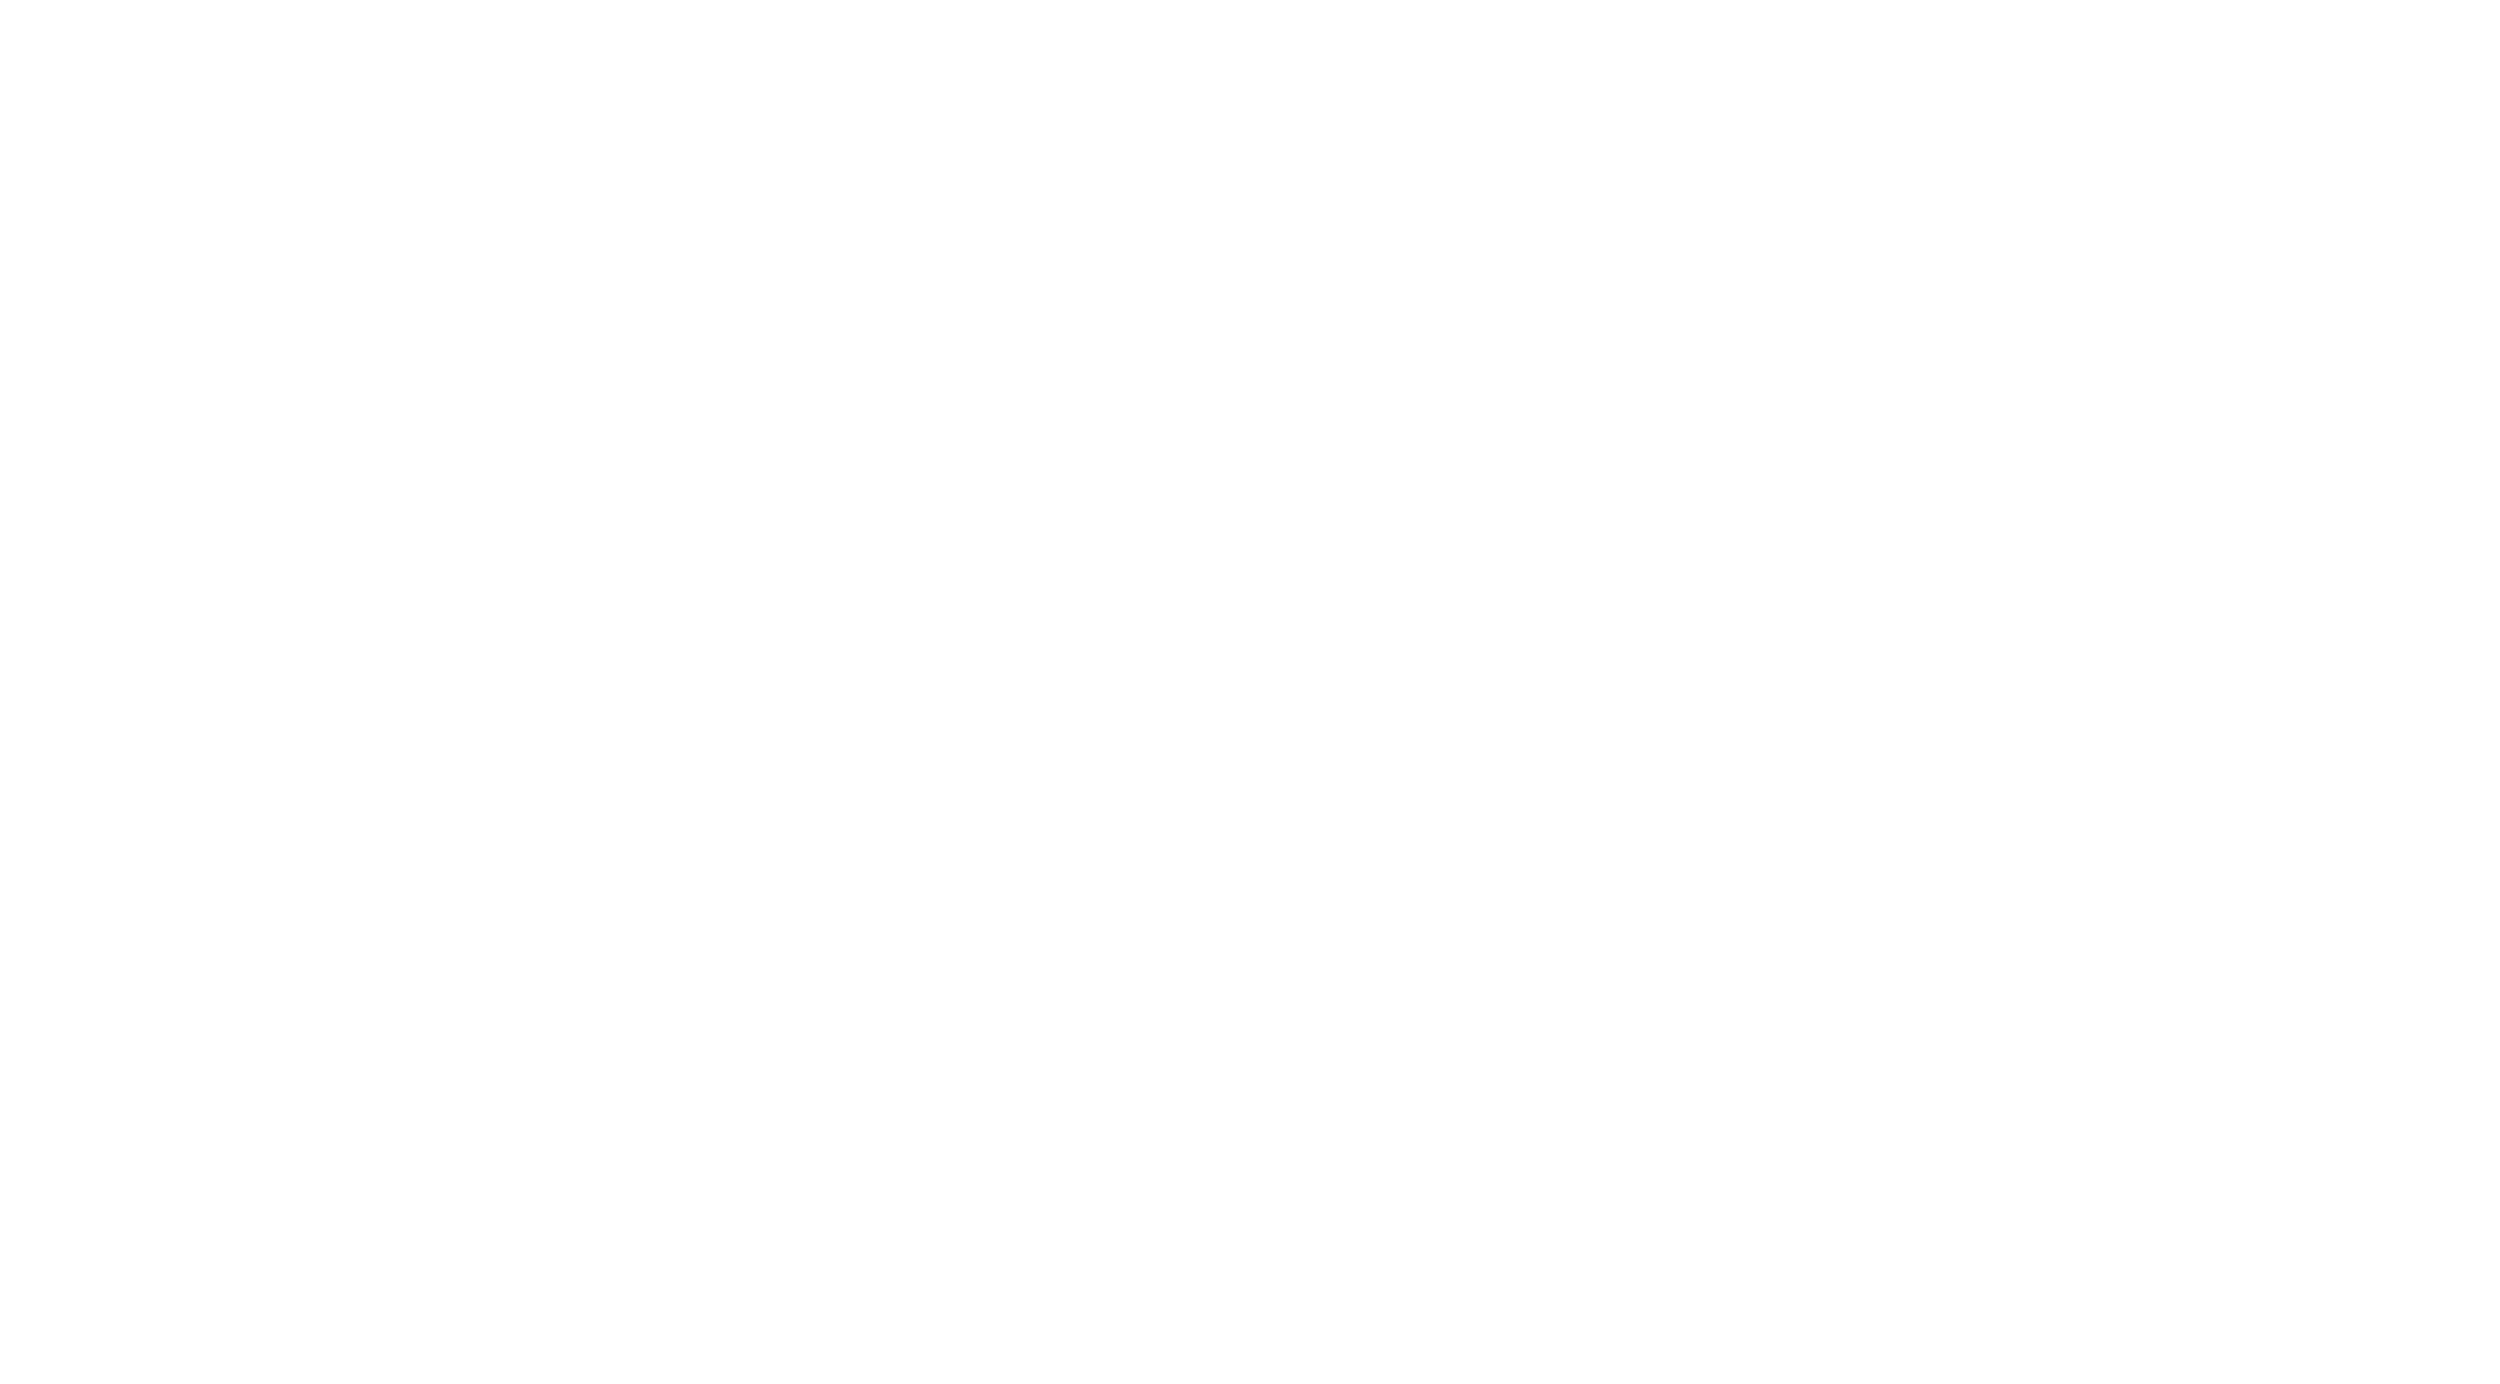 ChronicCellars_WHITE logo.png